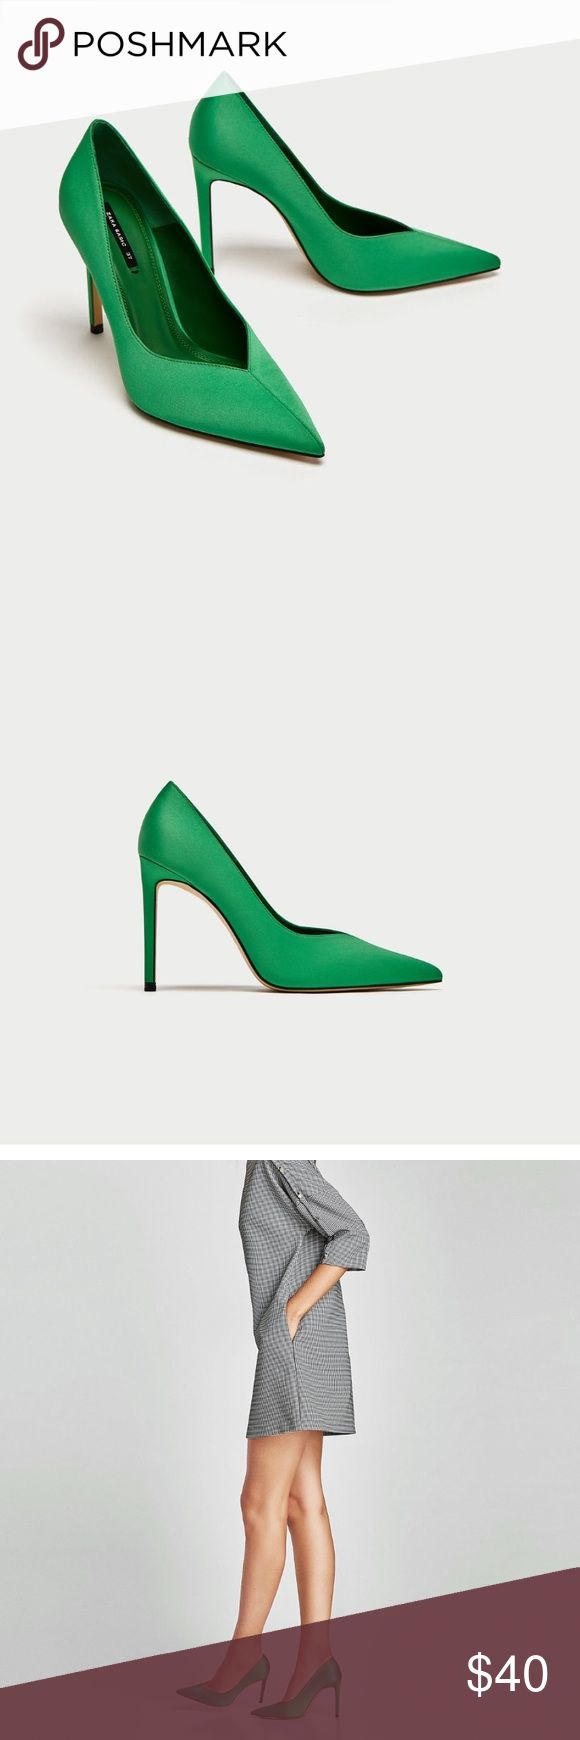 """HP 2/18 ZARA Green V Vamp Court Shoes Green high heel court shoes, fabric upper, V Vamp, lined Stiletto heel and pointed toe  Heel height 3.9"""" Zara Shoes Heels #stilettoheelspointed"""